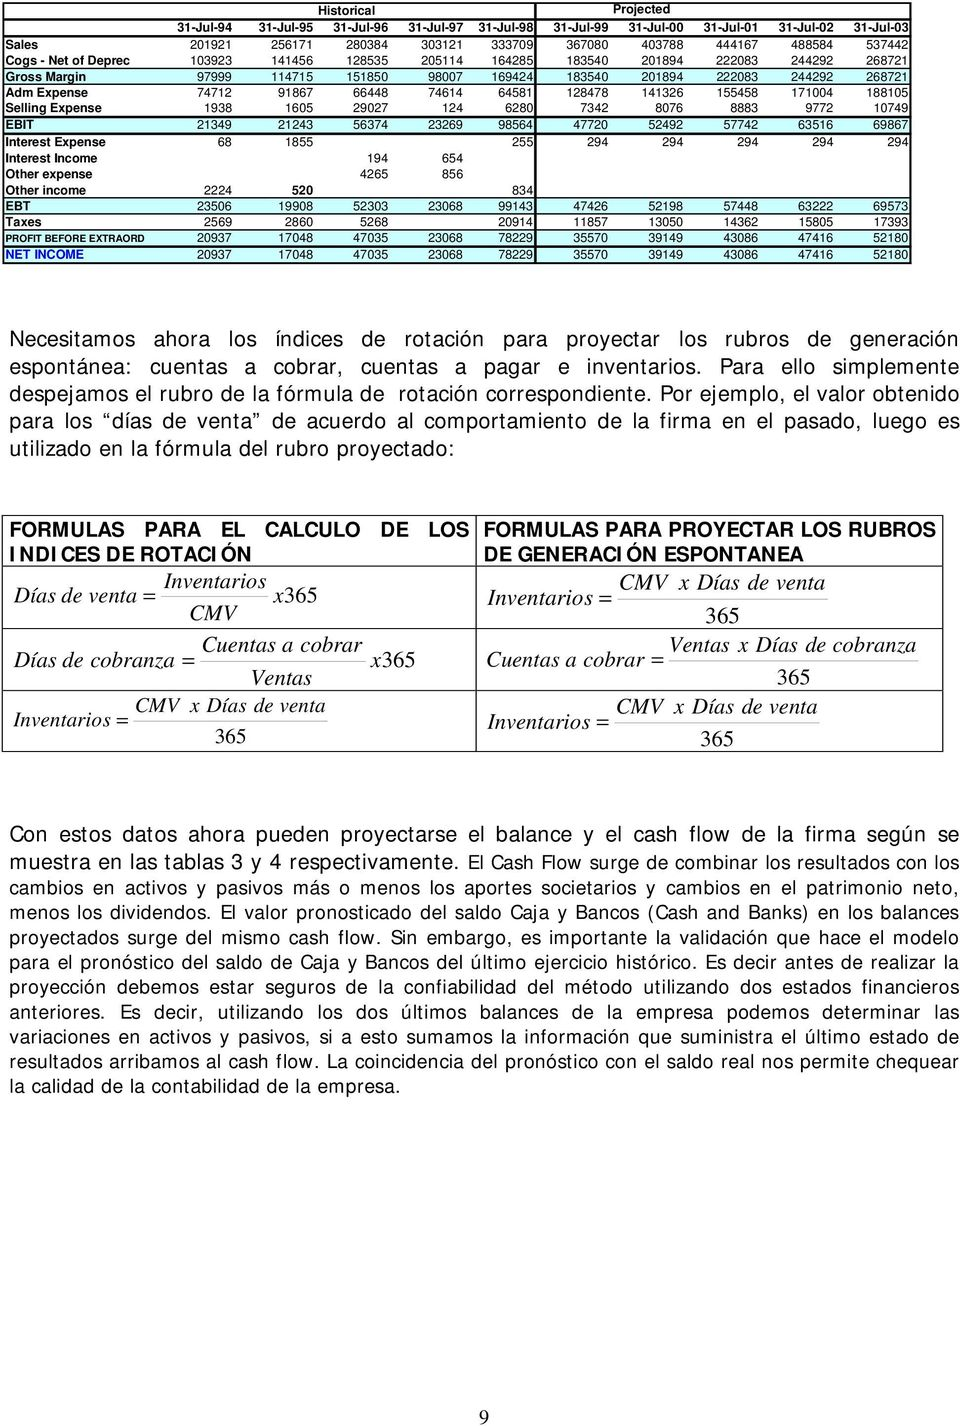 66448 74614 64581 128478 141326 155458 171004 188105 Selling Expense 1938 1605 29027 124 6280 7342 8076 8883 9772 10749 EBIT 21349 21243 56374 23269 98564 47720 52492 57742 63516 69867 Interest